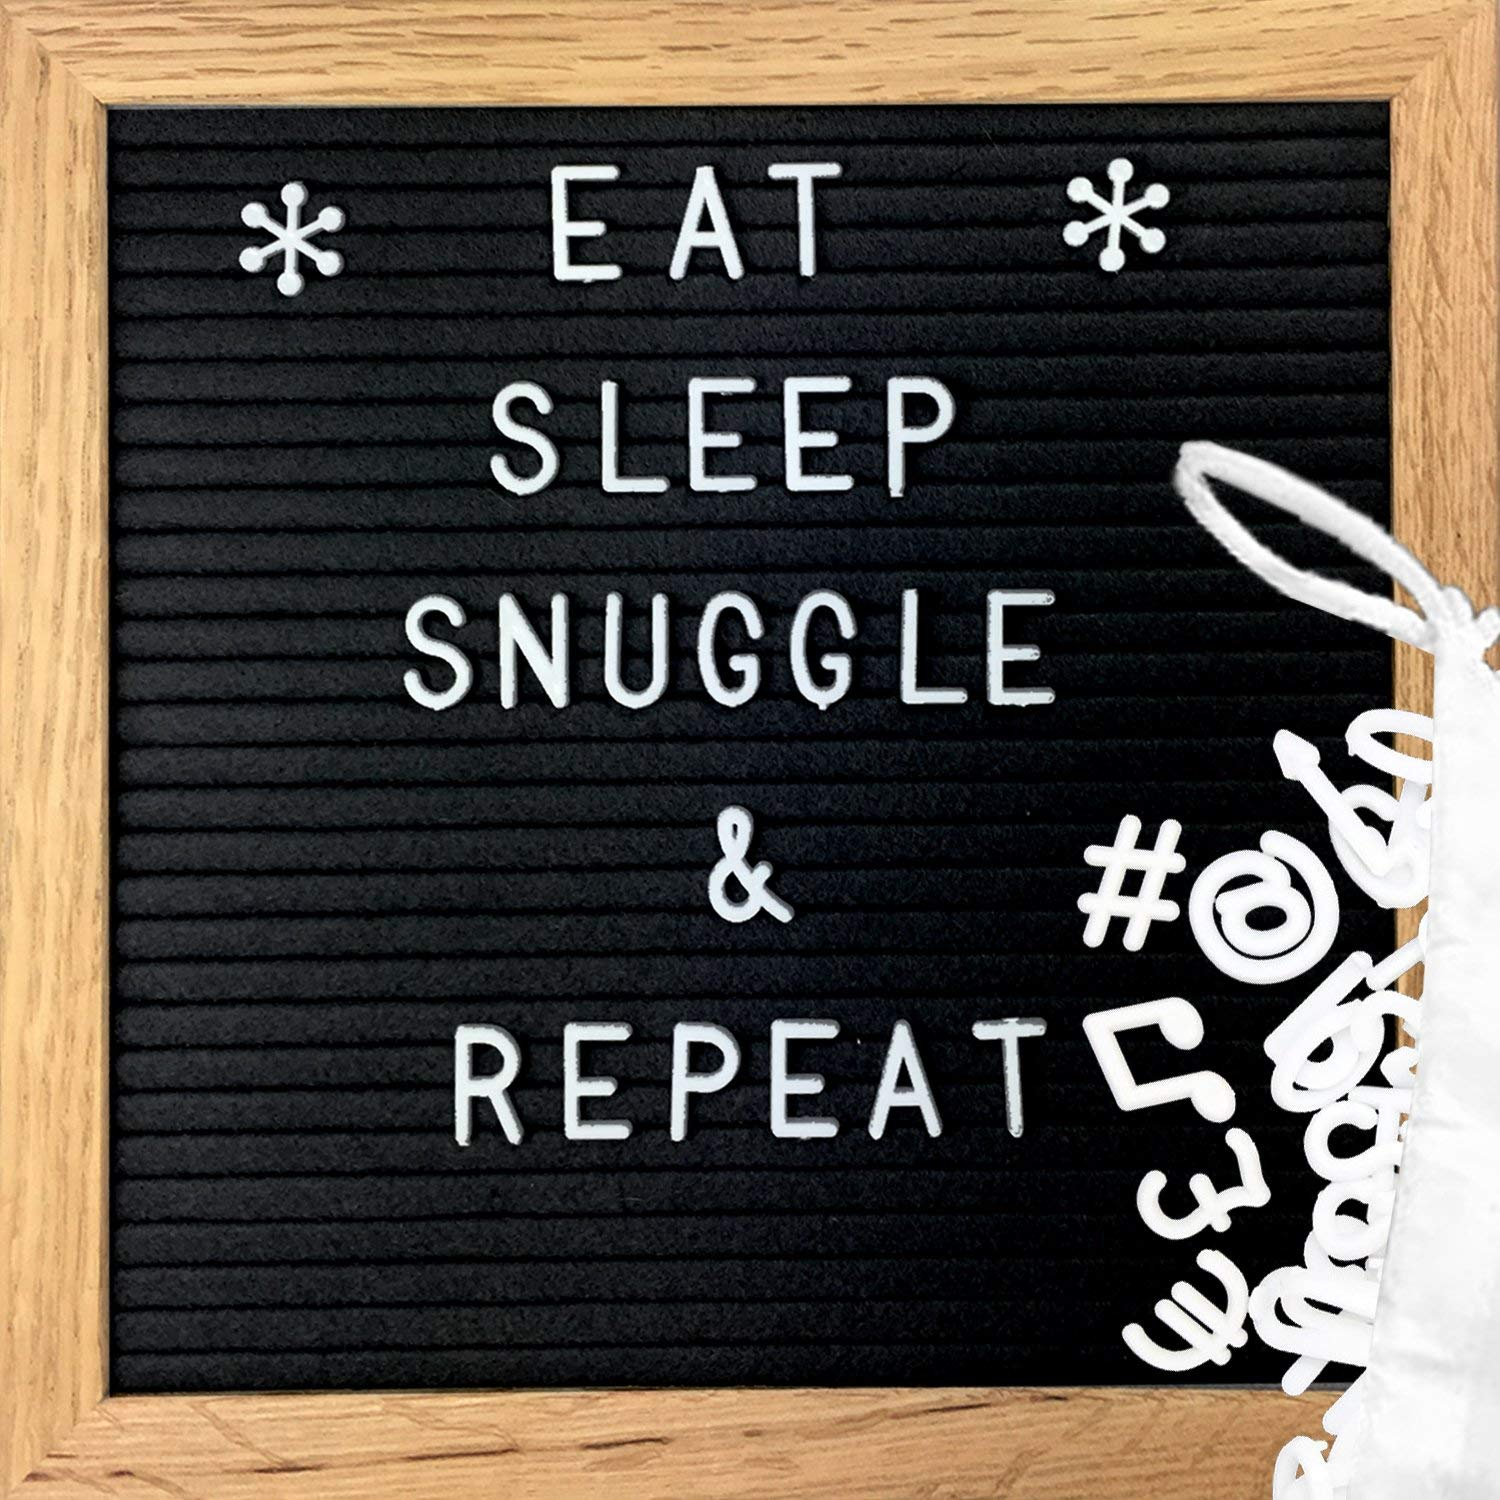 "Clearance Sale!!!! Changeable Felt Letter Board - Black Felt Message Board with 362 Letters, Numbers, Symbols & Emojis | Premium Oak Wood Frame - Display Words, Quotes, Announcements - 10"" x 10"""